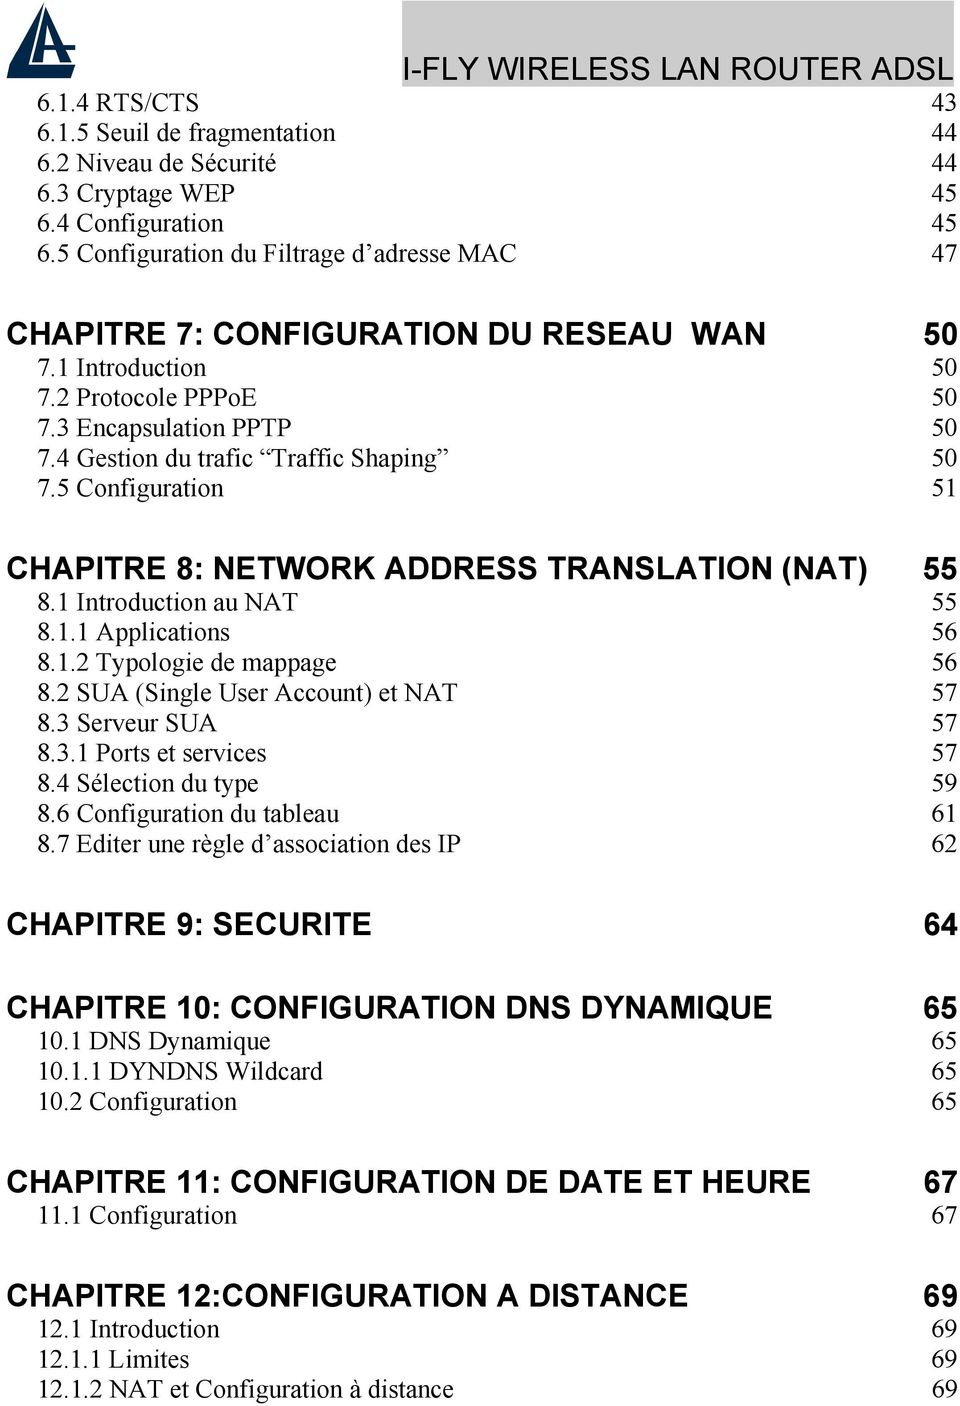 5 Configuration 51 CHAPITRE 8: NETWORK ADDRESS TRANSLATION (NAT) 55 8.1 Introduction au NAT 55 8.1.1 Applications 56 8.1.2 Typologie de mappage 56 8.2 SUA (Single User Account) et NAT 57 8.